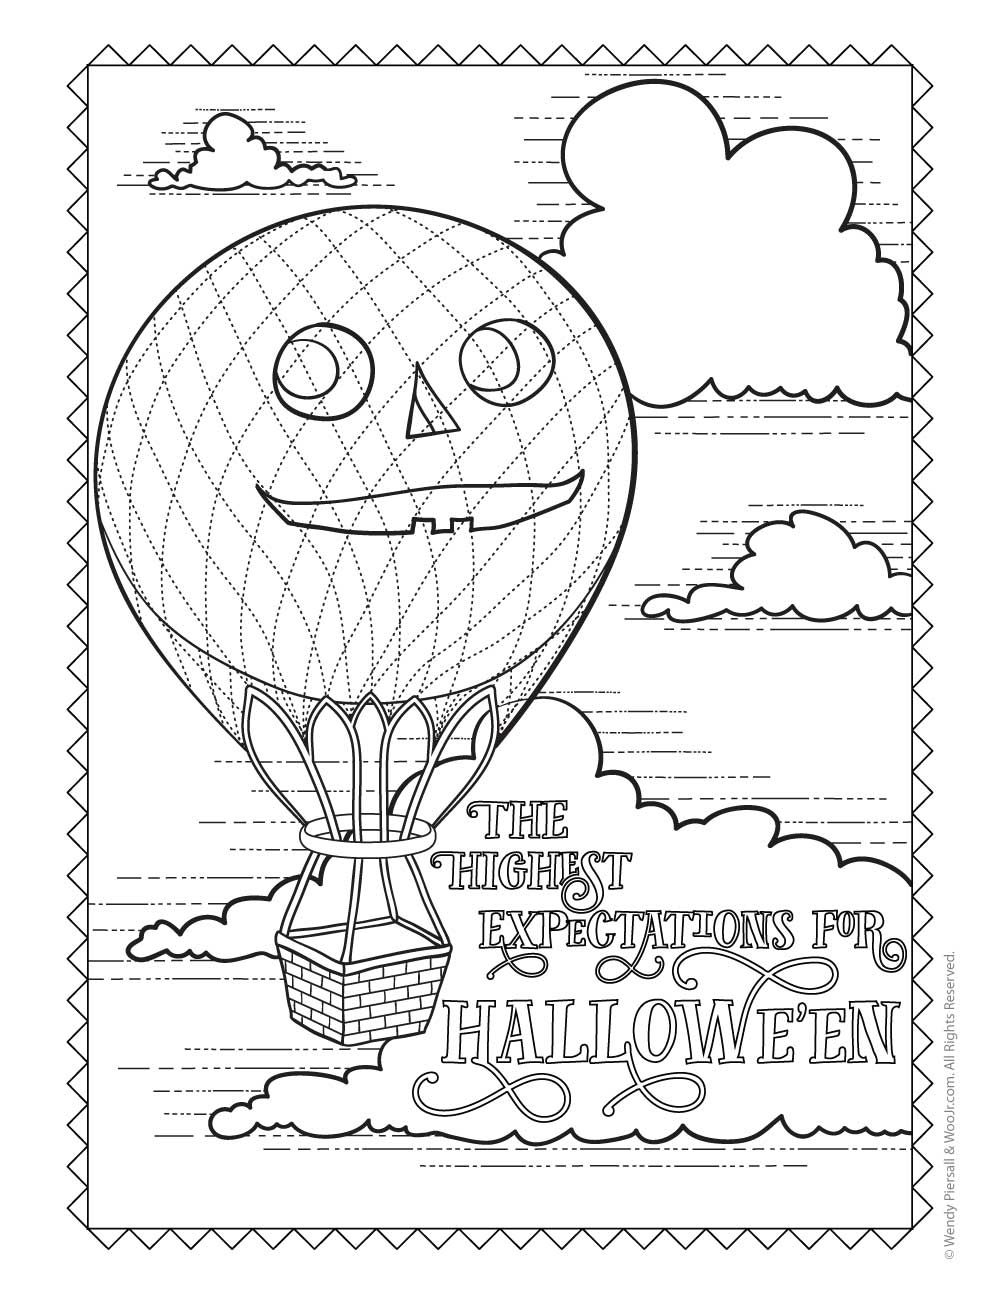 Antique Halloween Pumpkin Hot Air Balloon Coloring pages